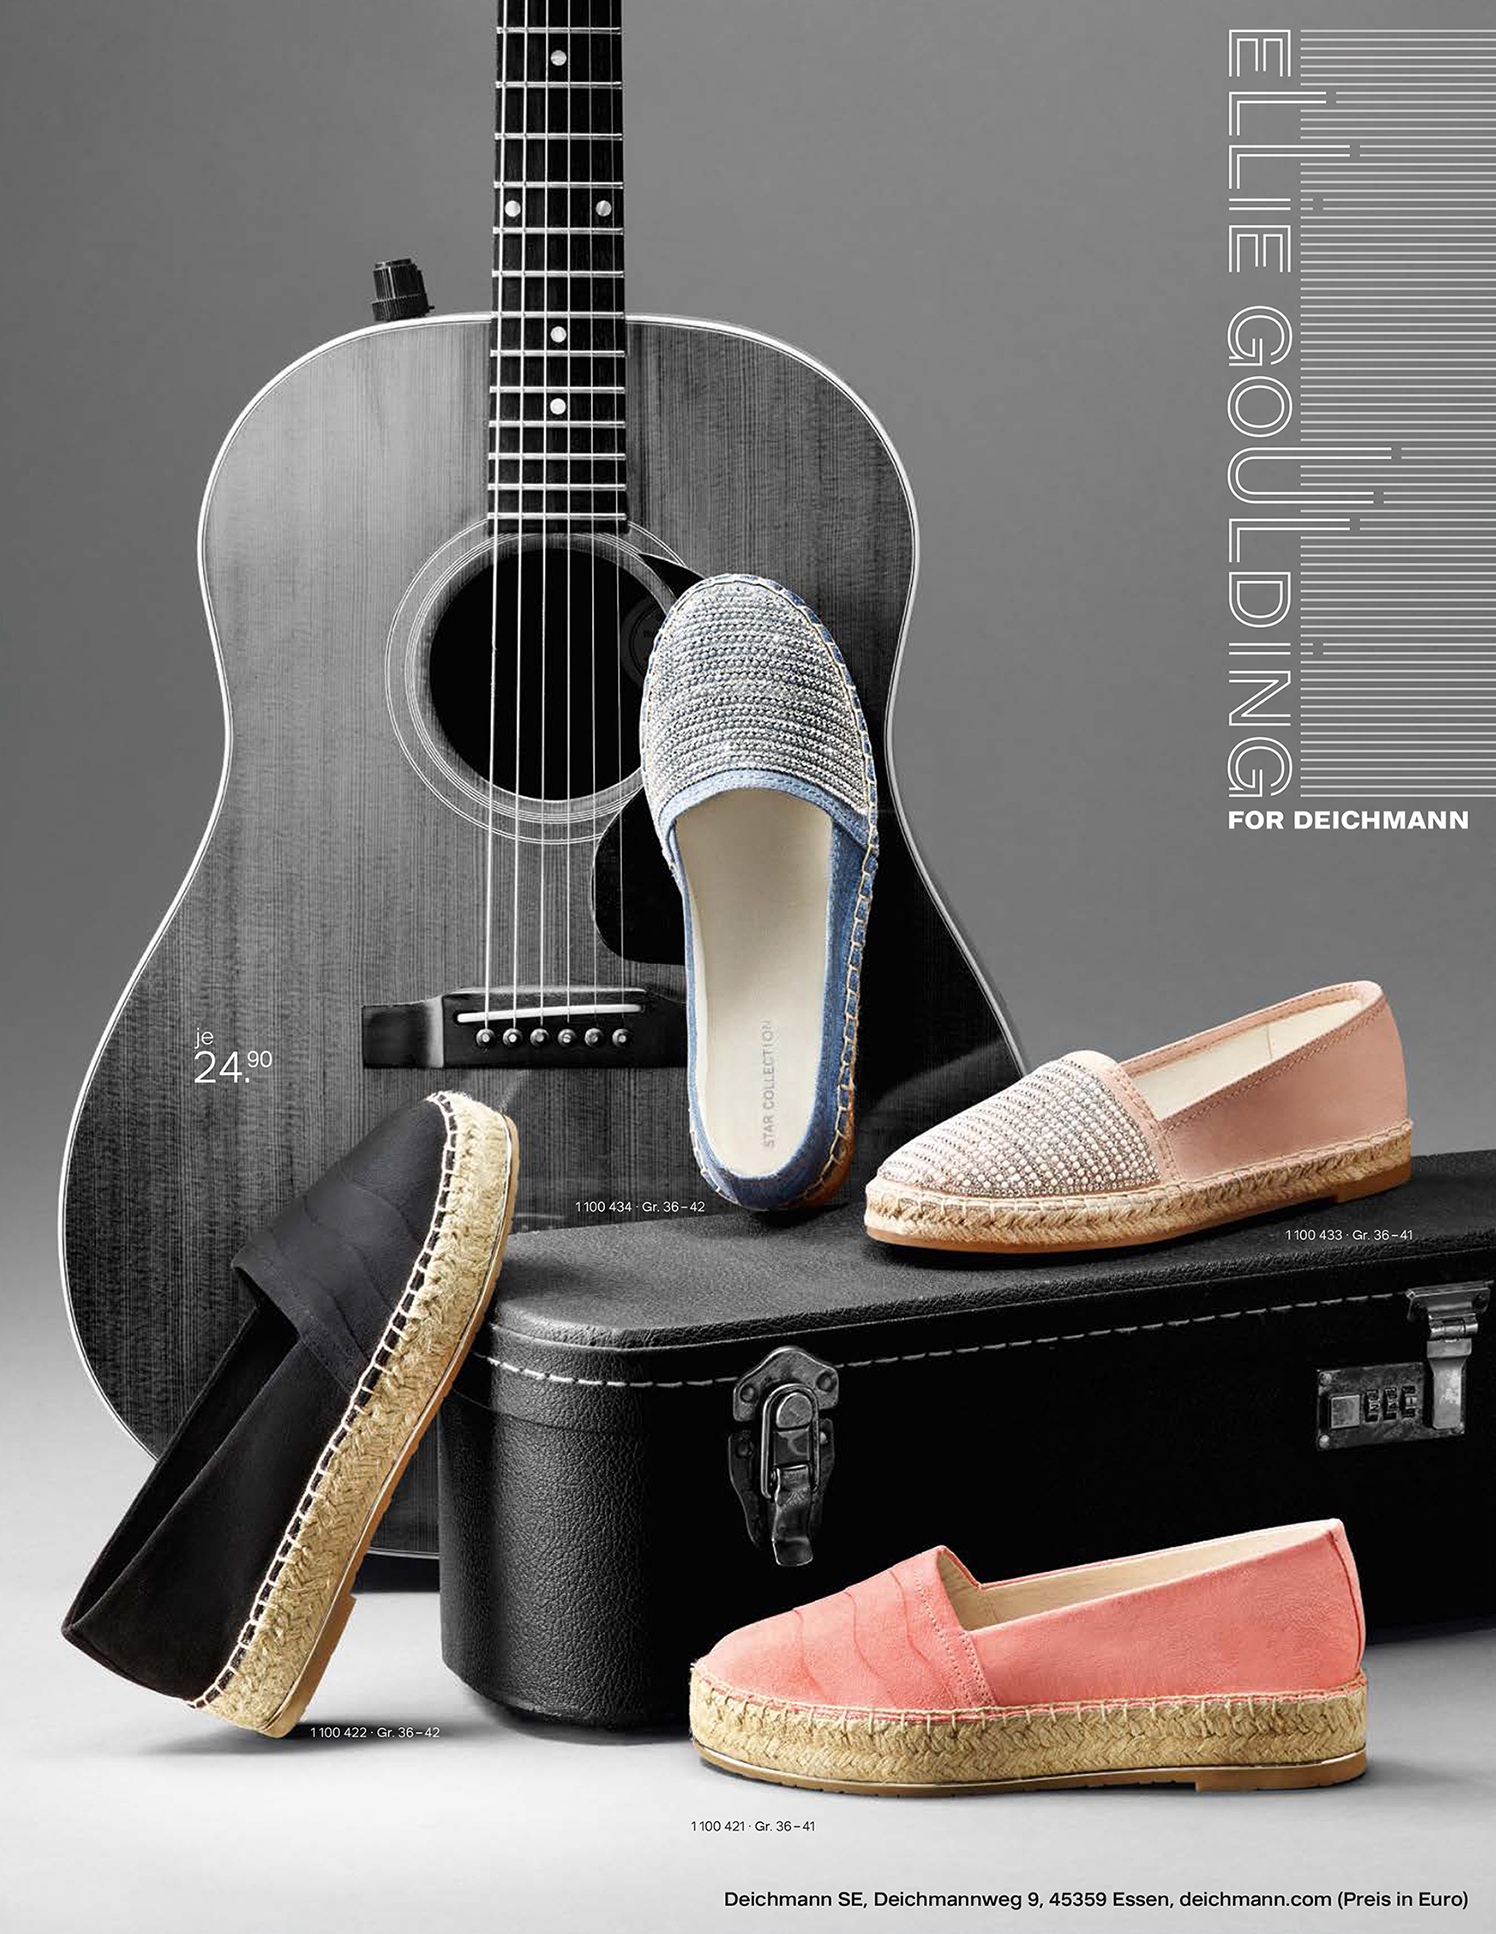 shoes_SD_450x290_2I1_GraziaBigIssue